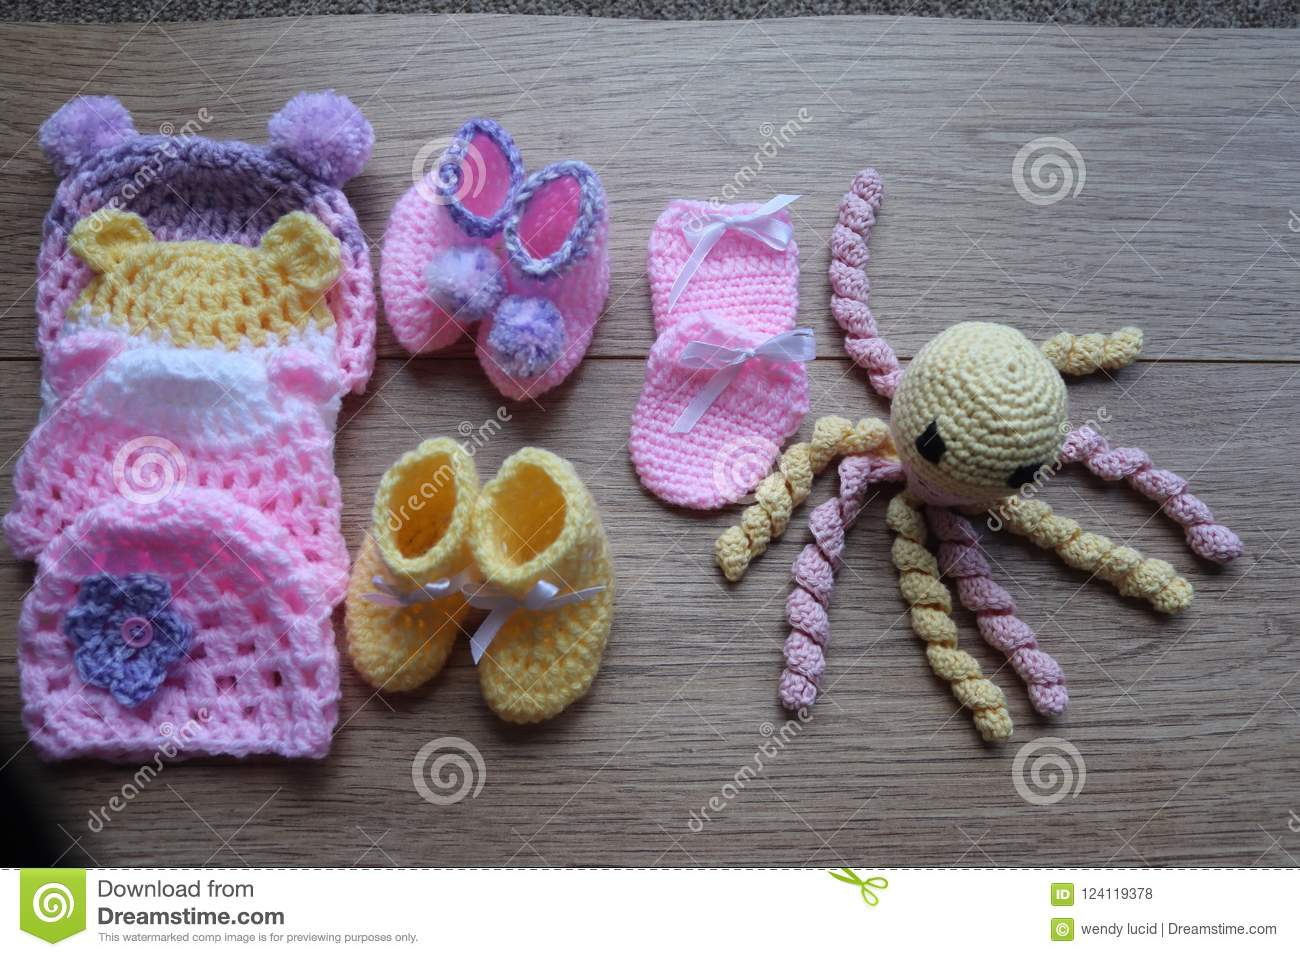 Premature baby items for comfort and warmth. hat and booties